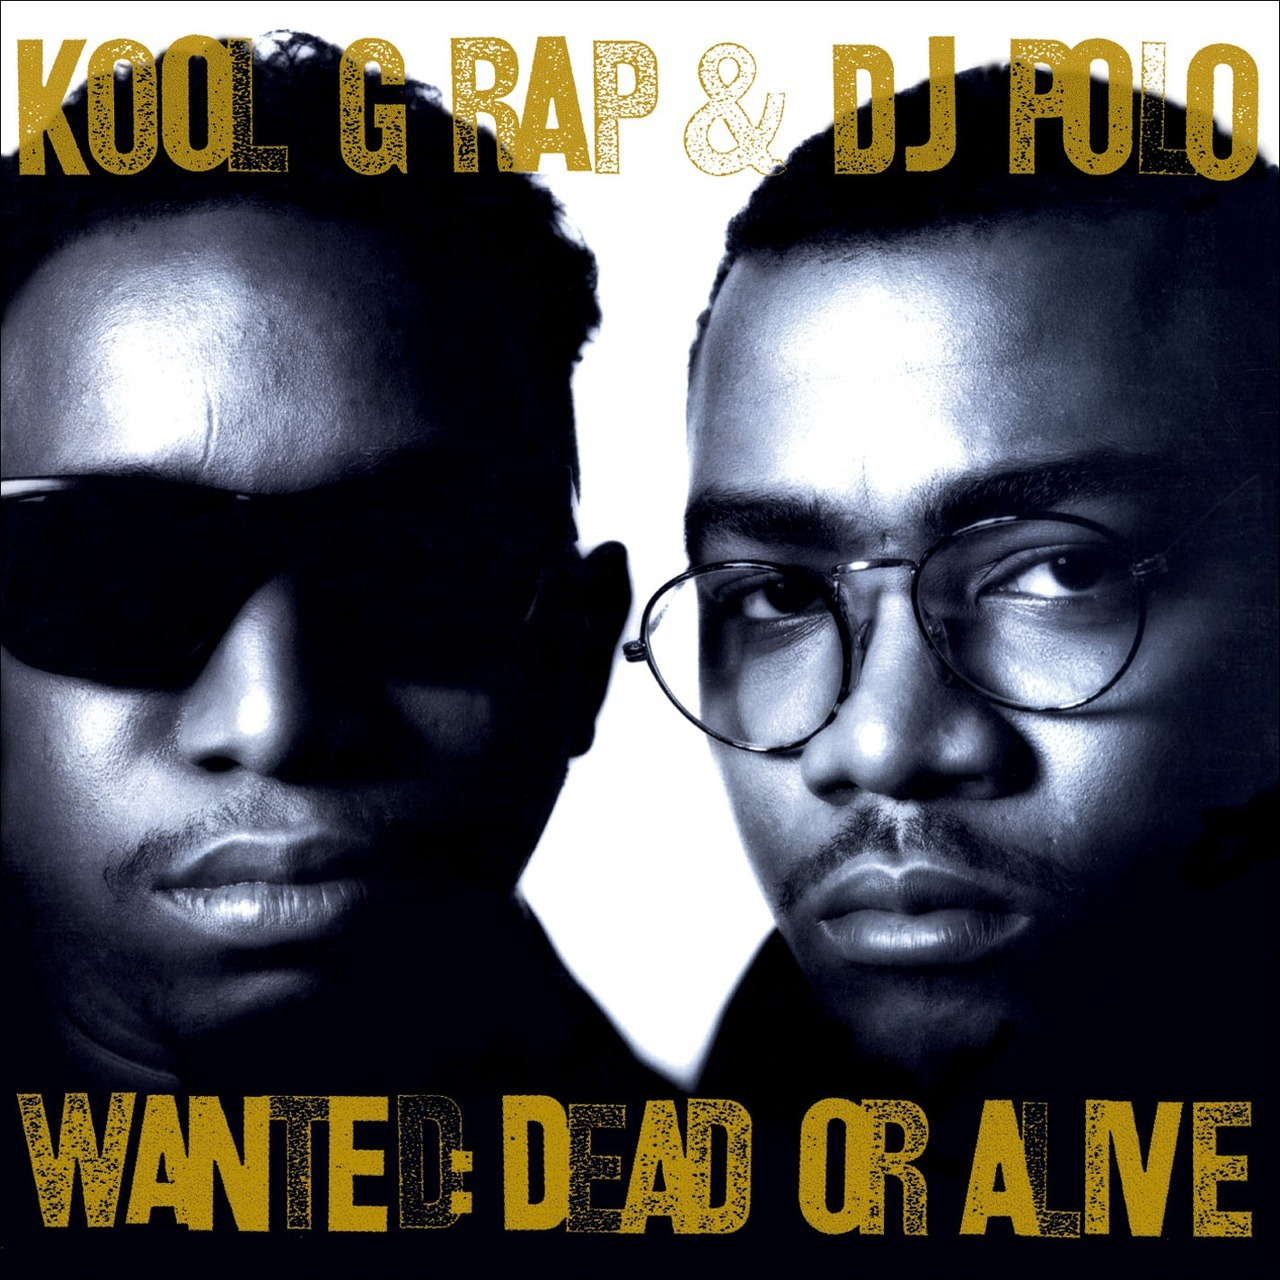 BACK IN THE DAY |8/13/90| Kool G. Rap & DJ Polo release their second album, Wanted: Dead Or Alive, on Cold Chillin' Records.